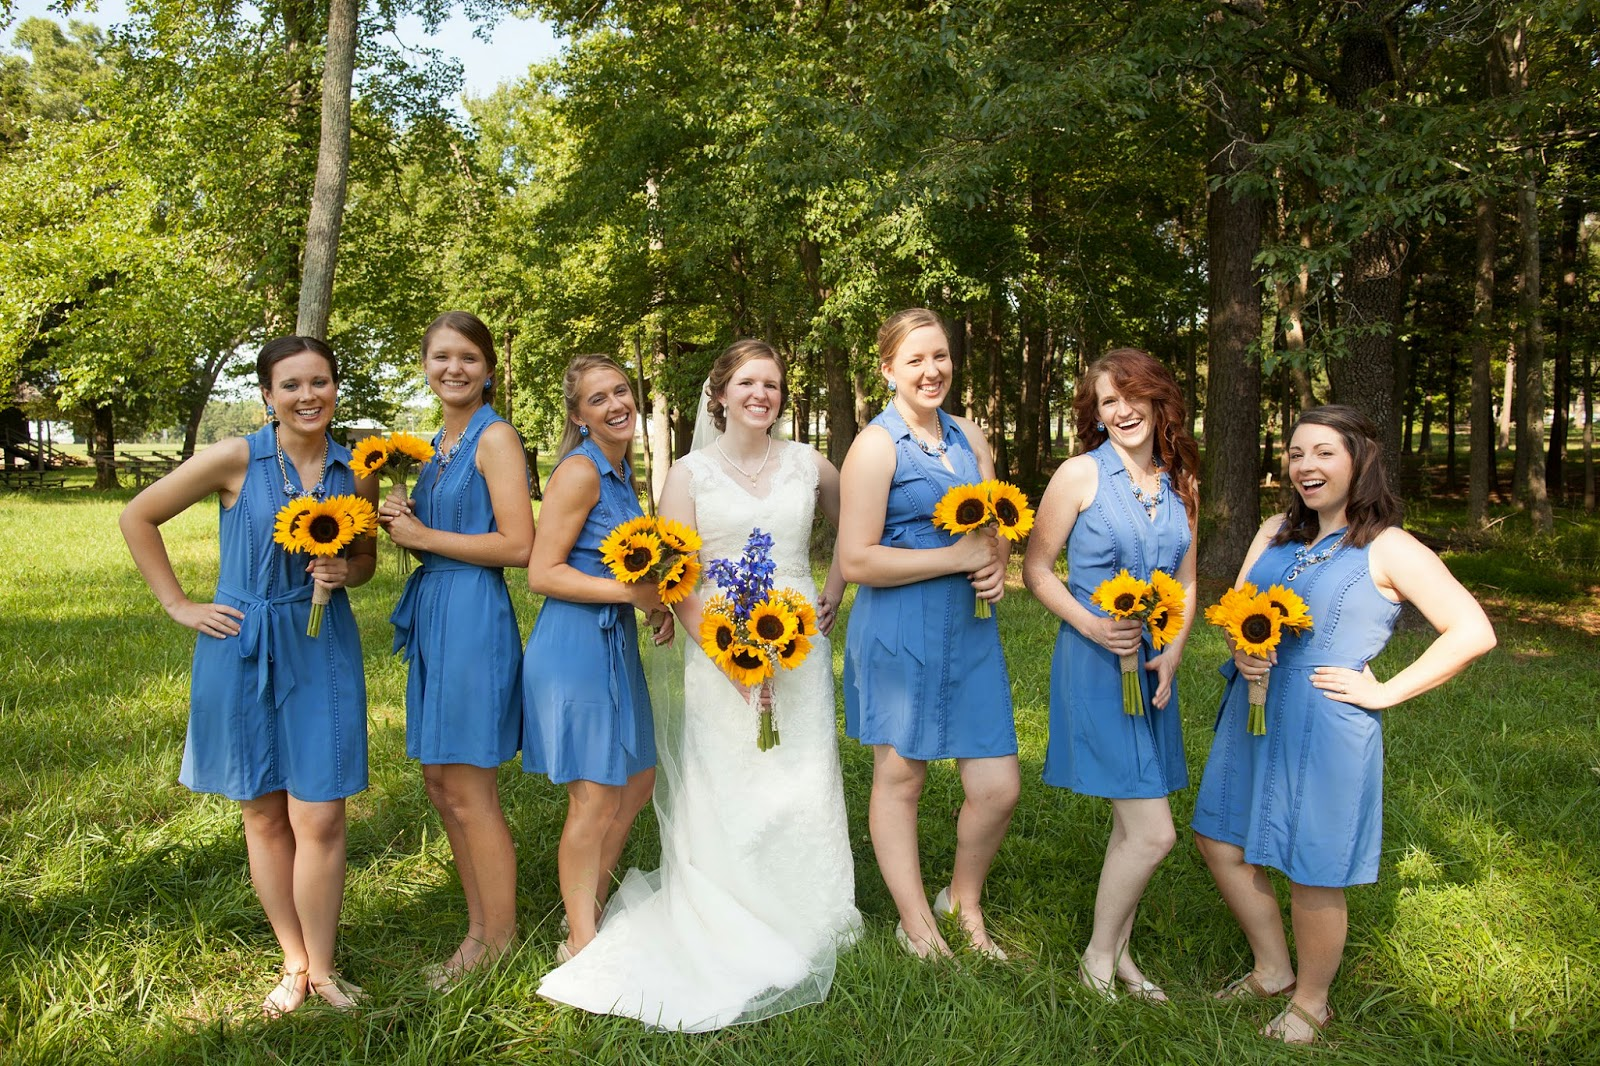 Bridesmaids with sunflowers